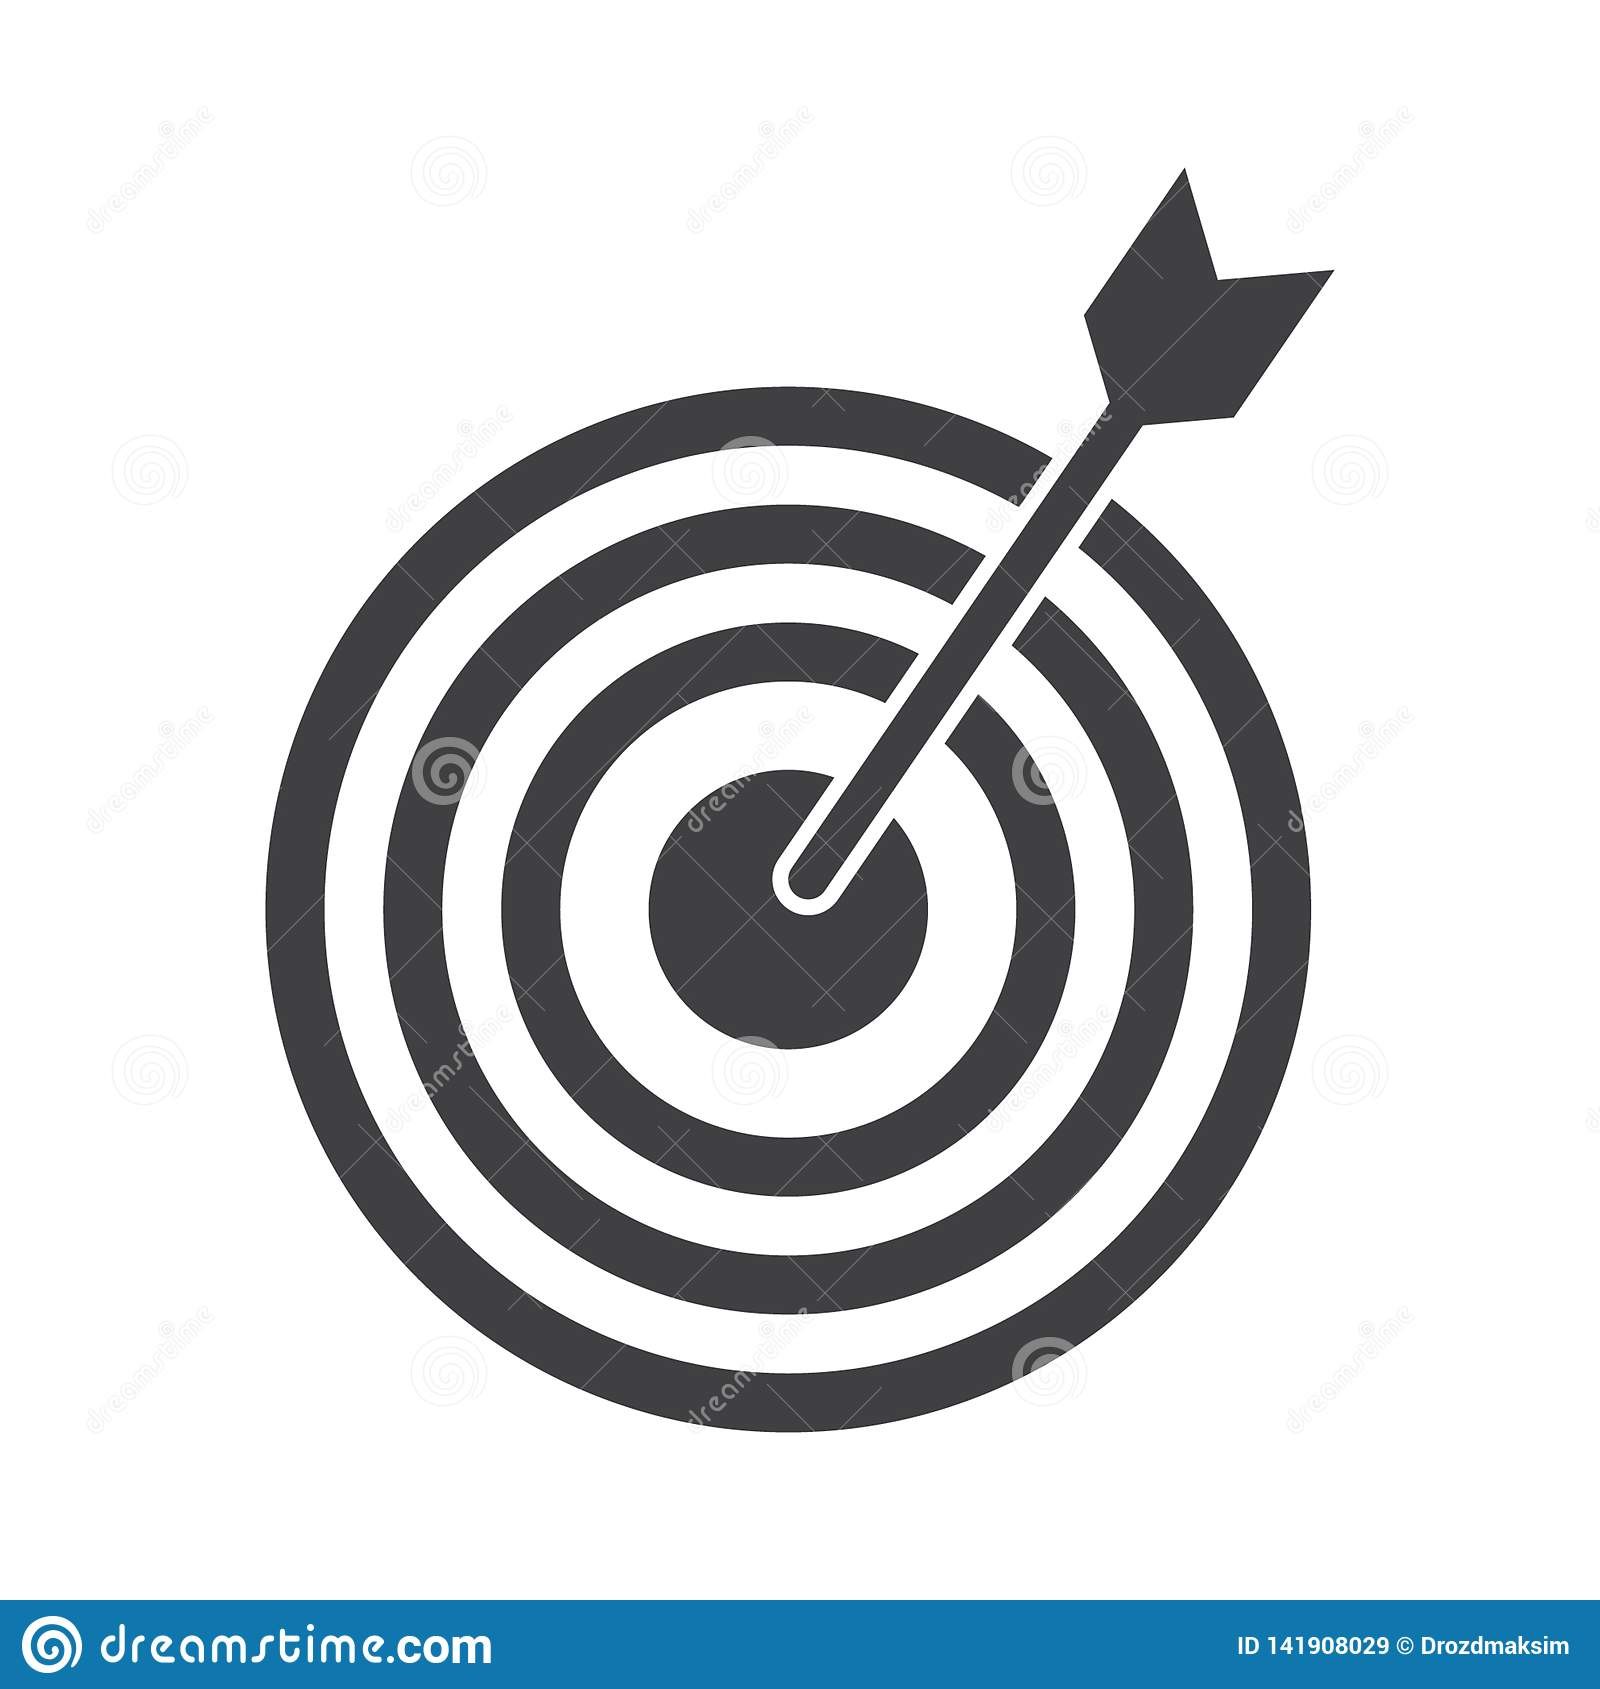 successful shoot darts target aim icon on white background vector illustration stock vector illustration of successful concept 141908029 https www dreamstime com successful shoot darts target aim icon white background vector illustration successful shoot darts target aim icon white image141908029